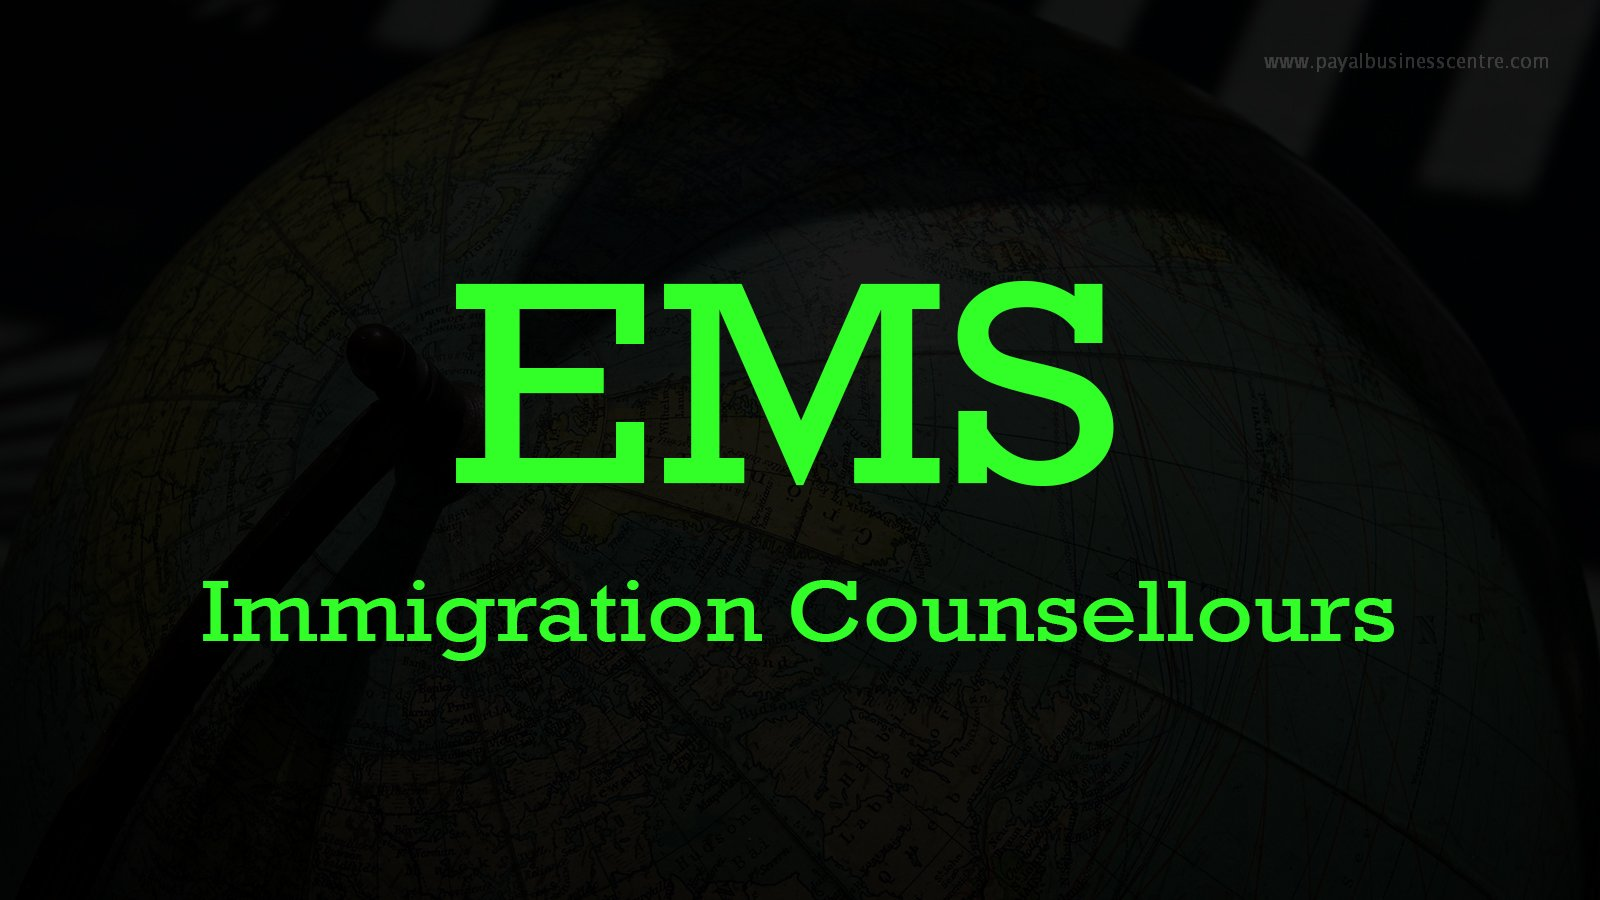 EMS Immigration Counsellours